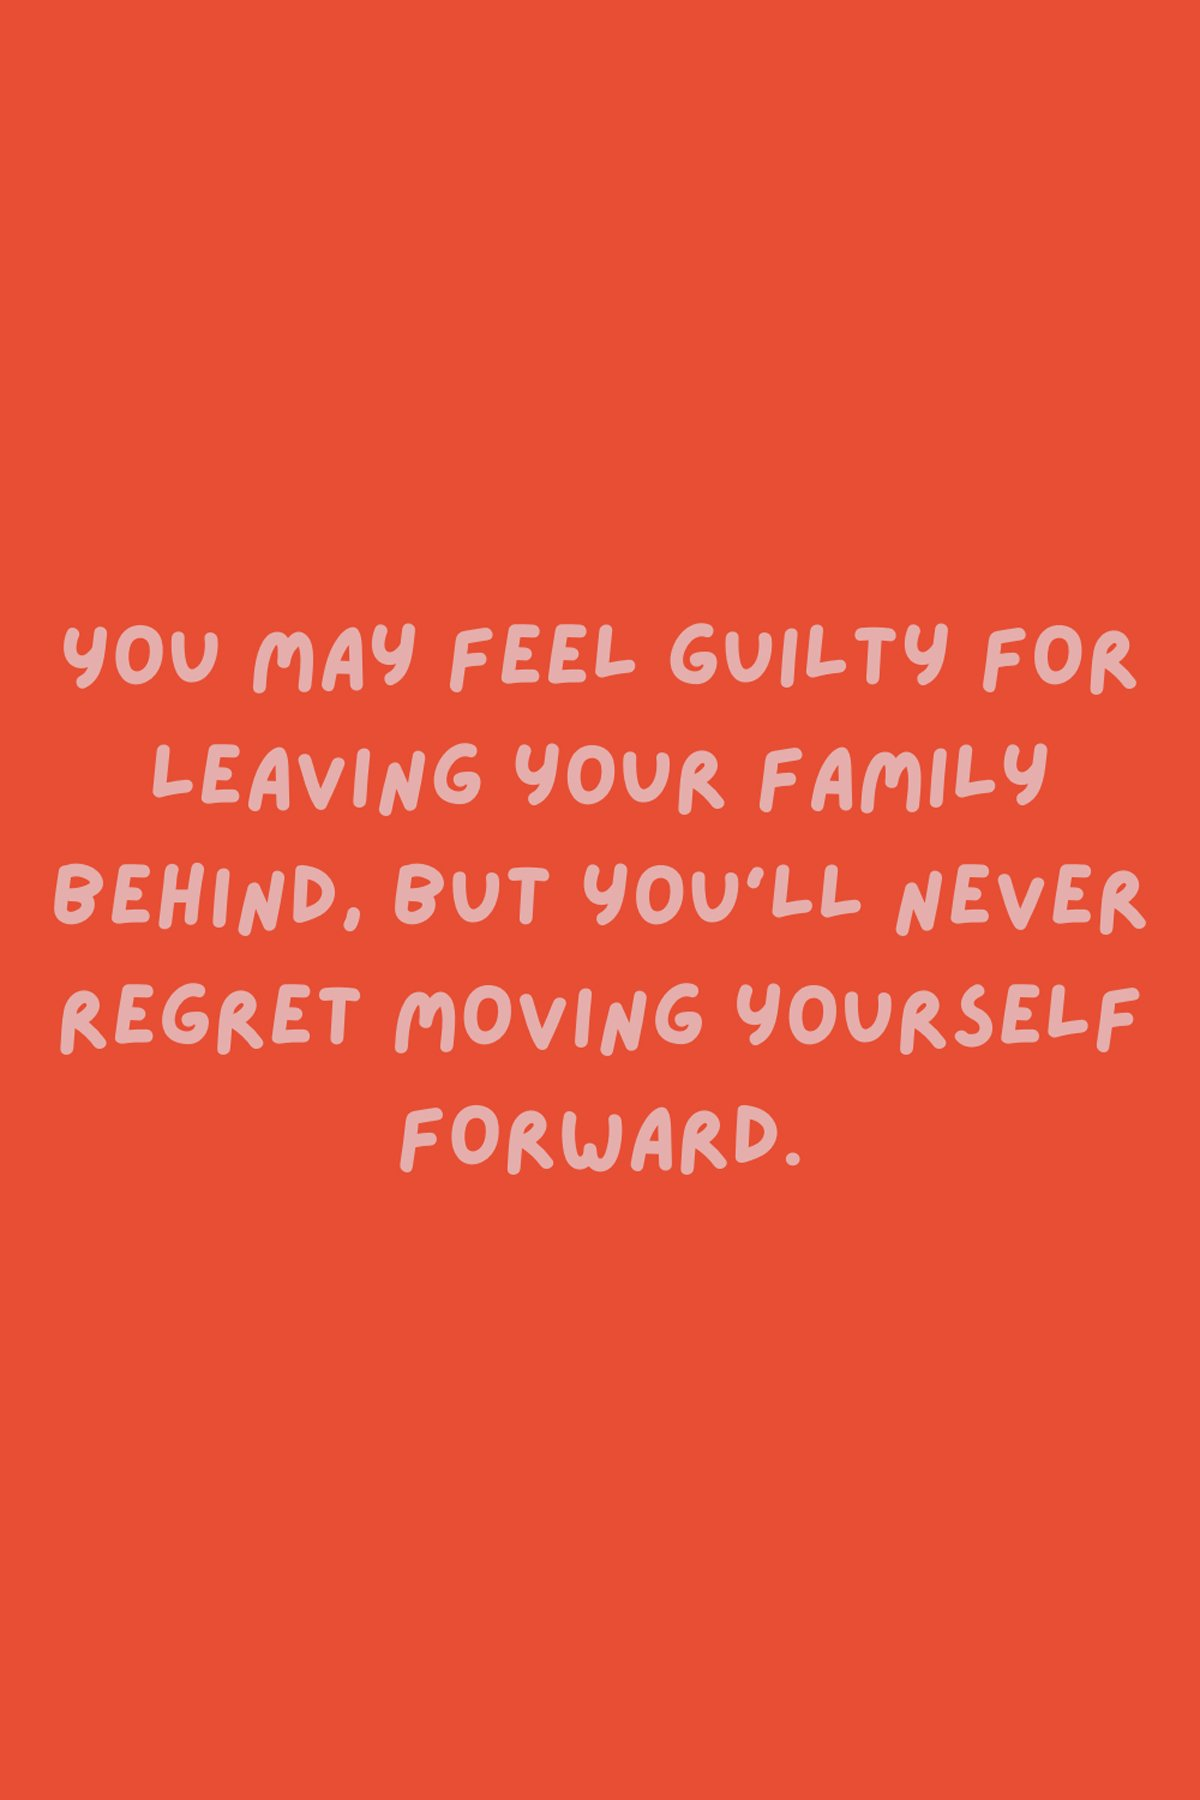 Fake Family Leaving Quotes